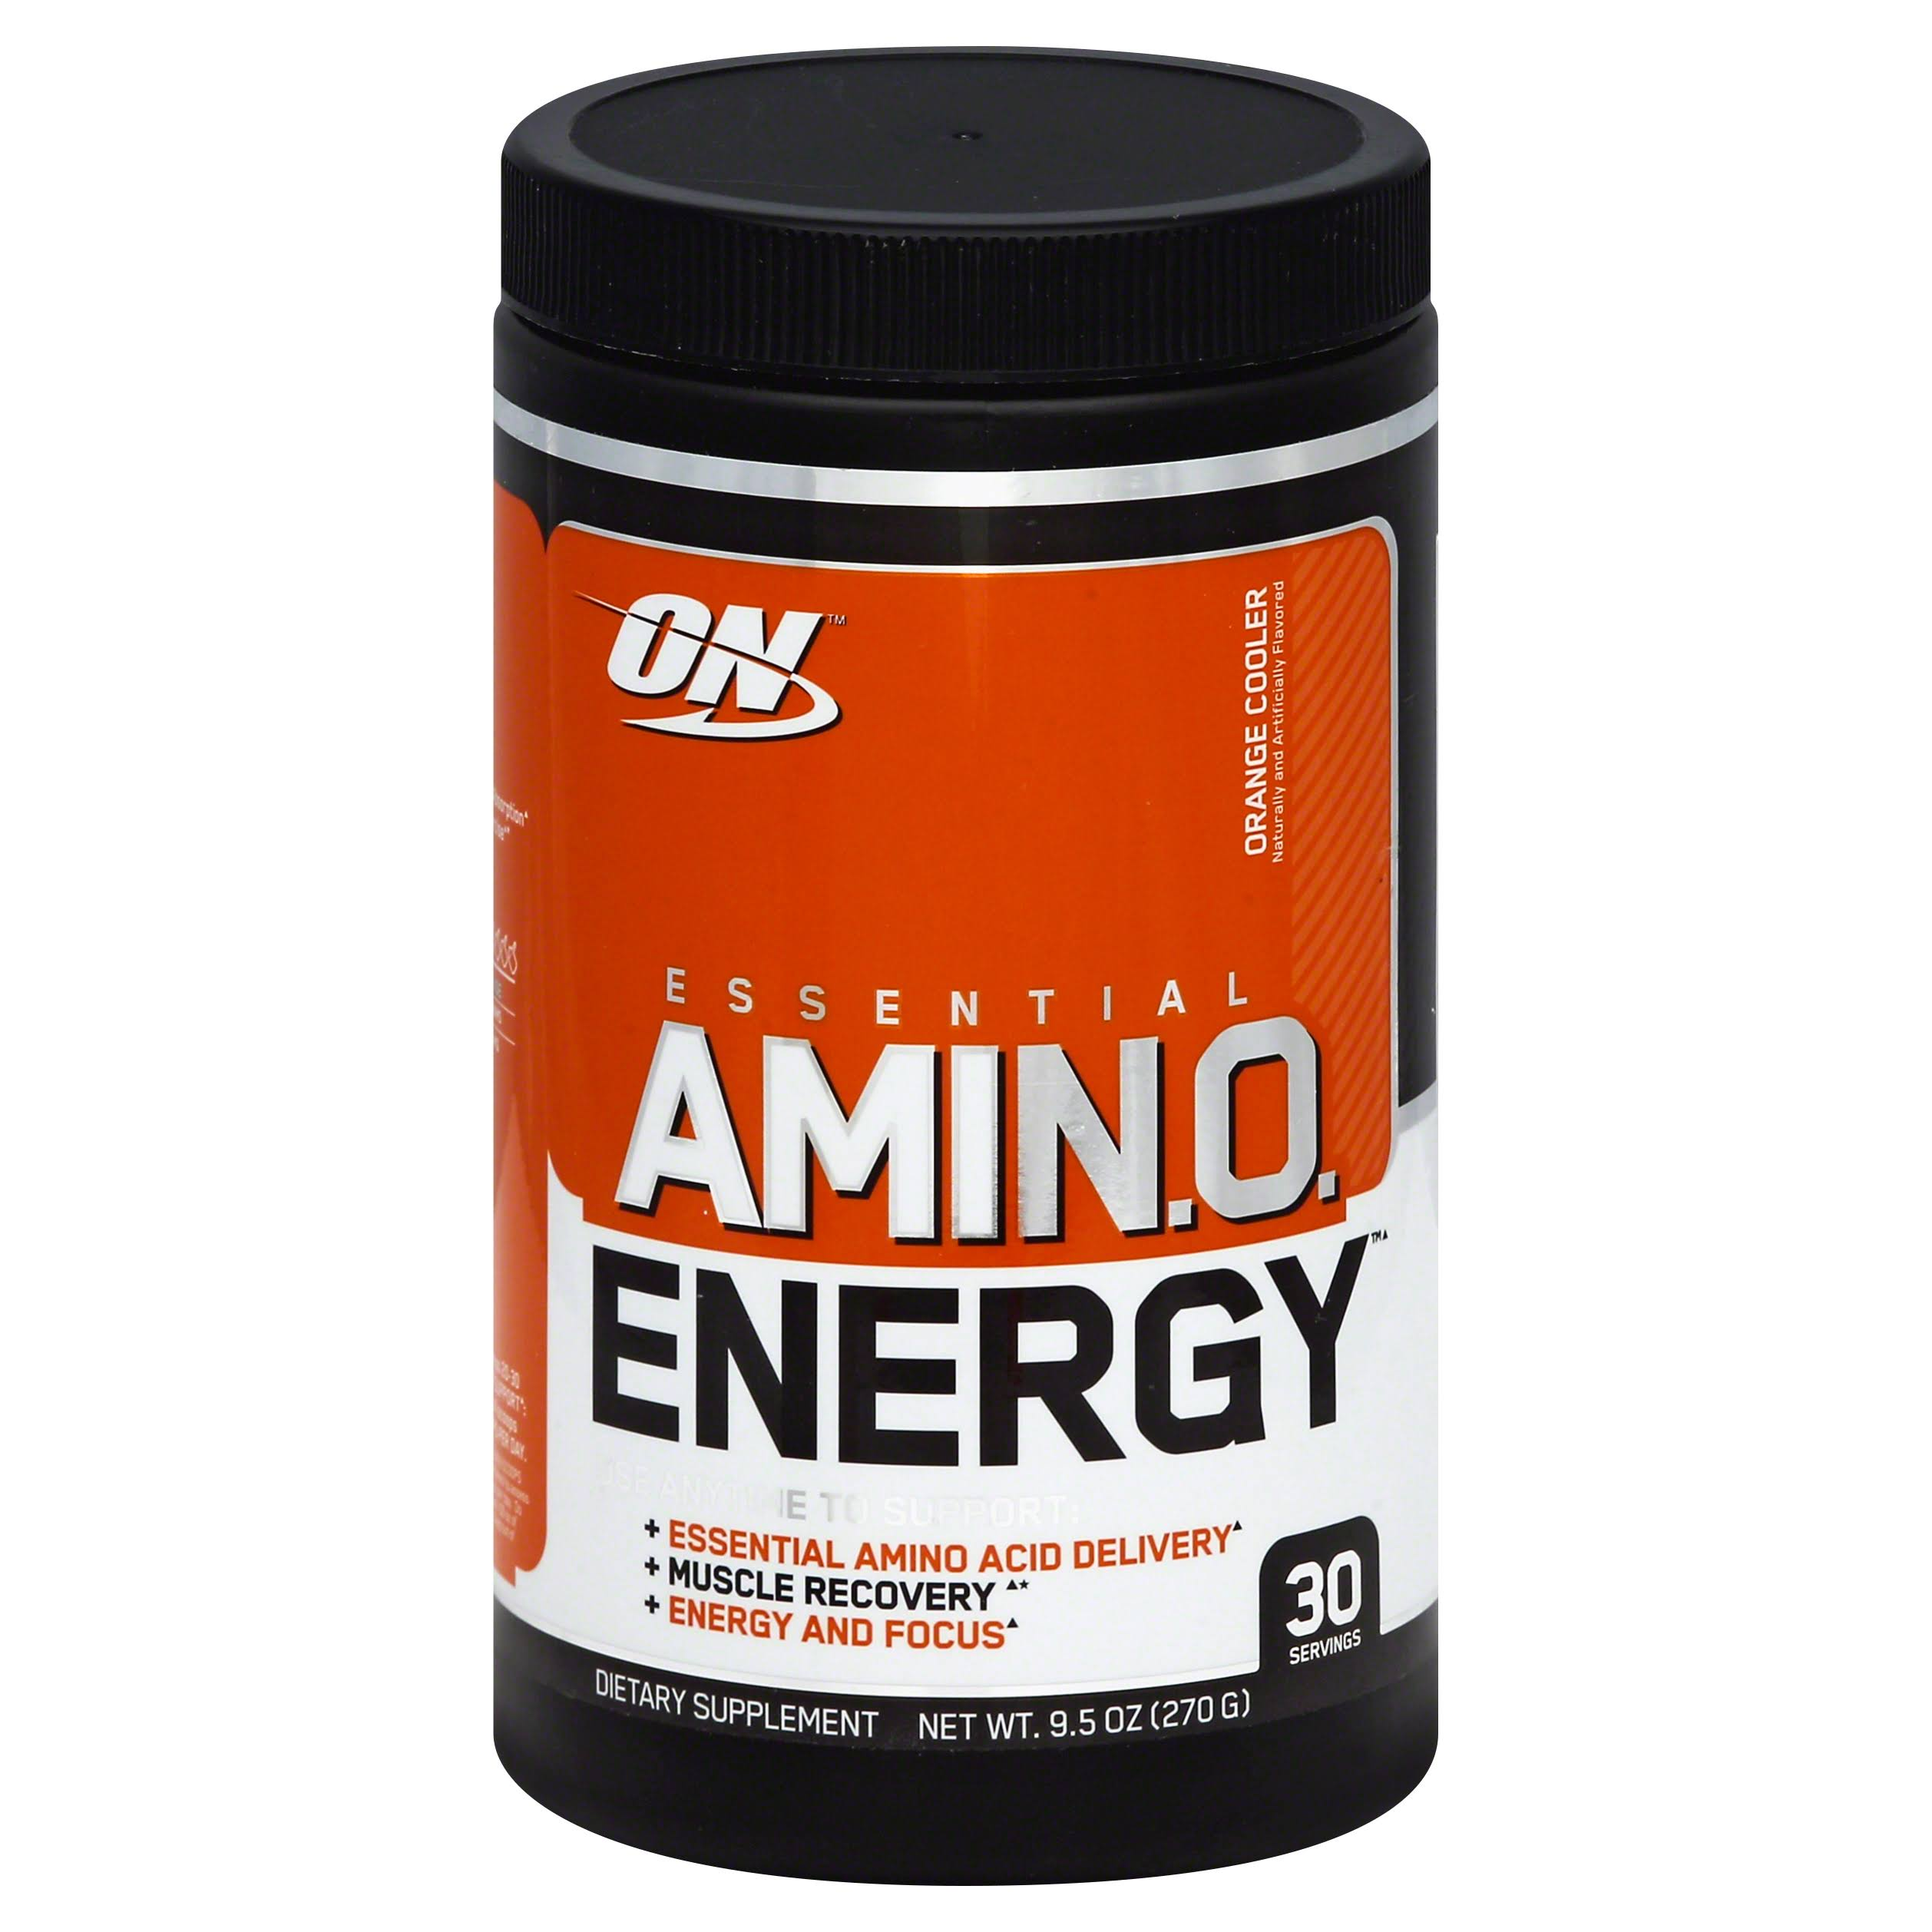 Optimum Nutrition Essential Amino Energy - Orange Cooler, 30 Servings